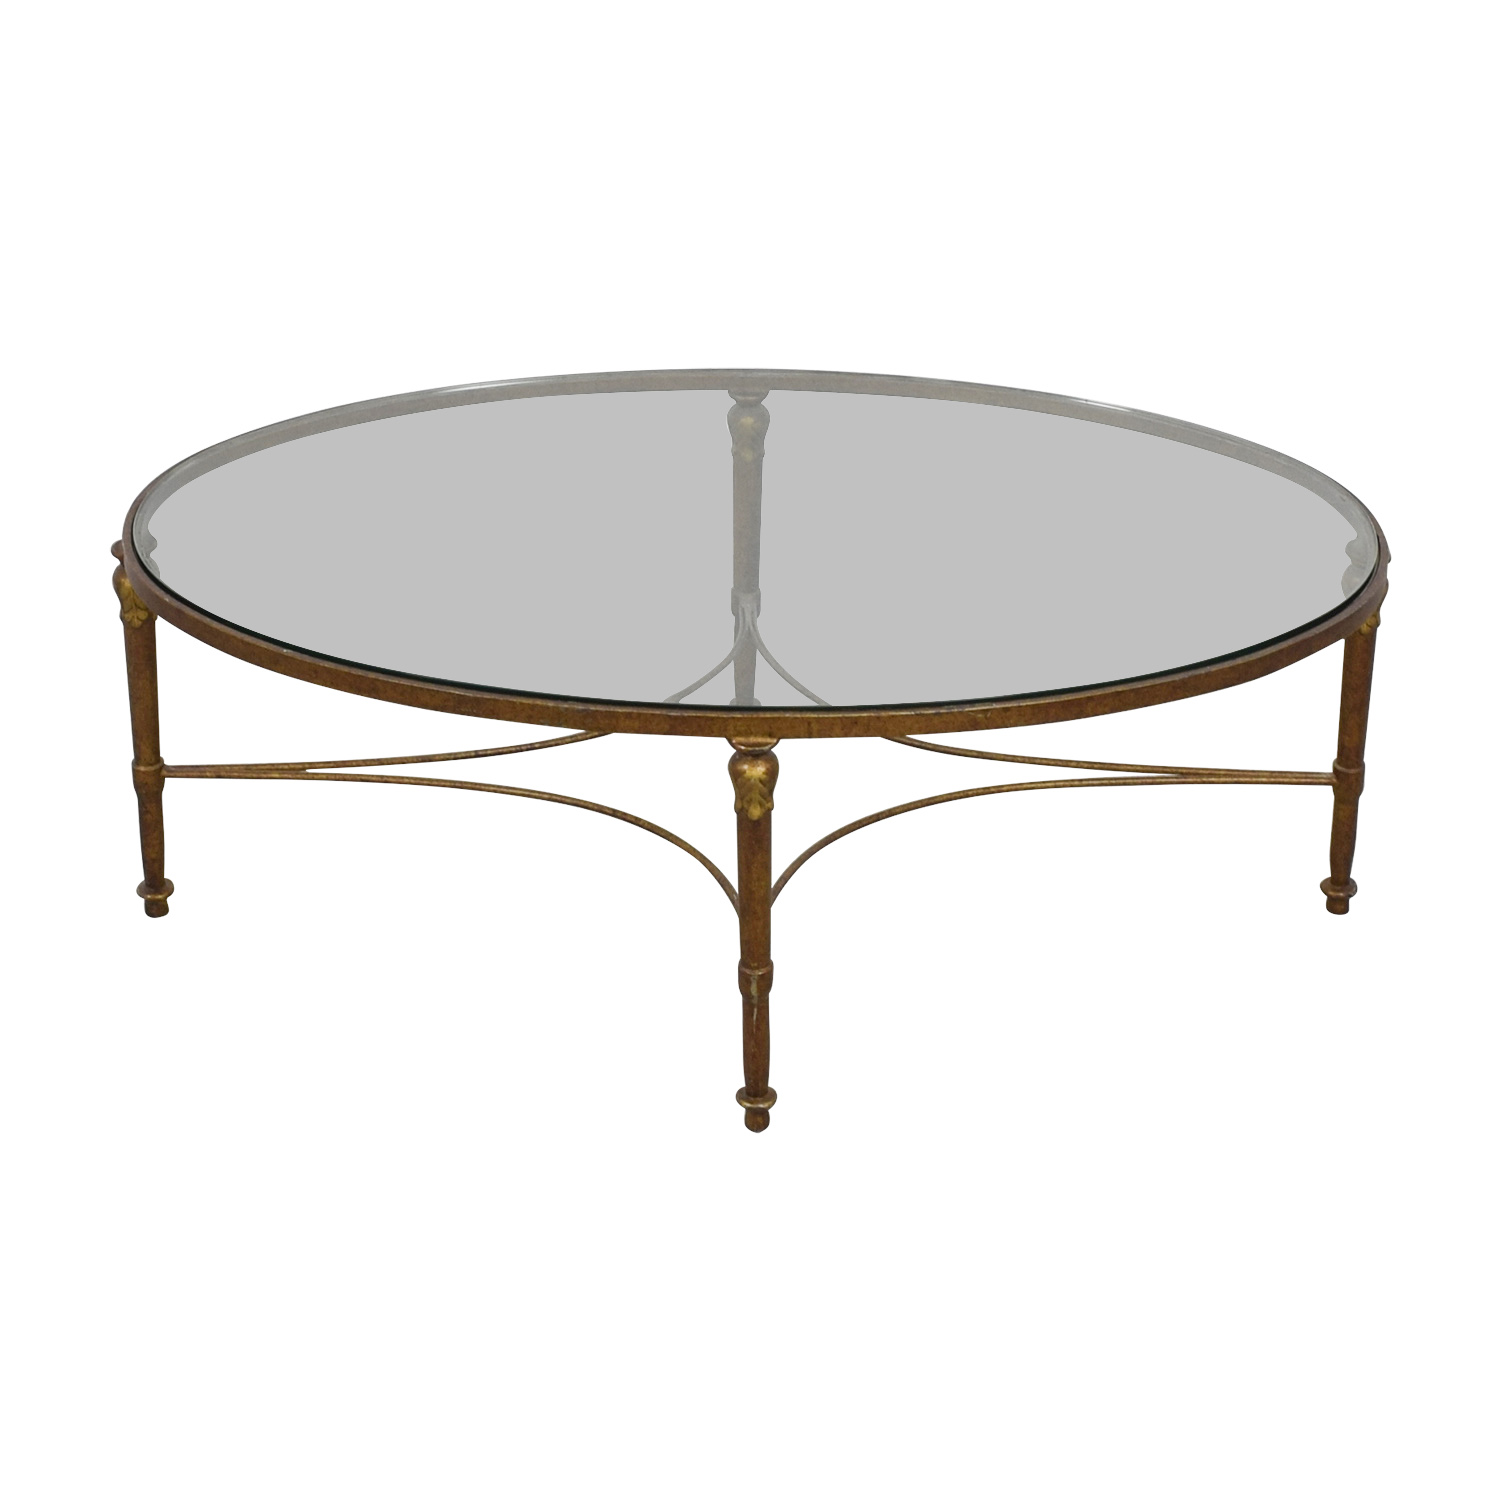 90 off oval wrought iron framed glass table tables